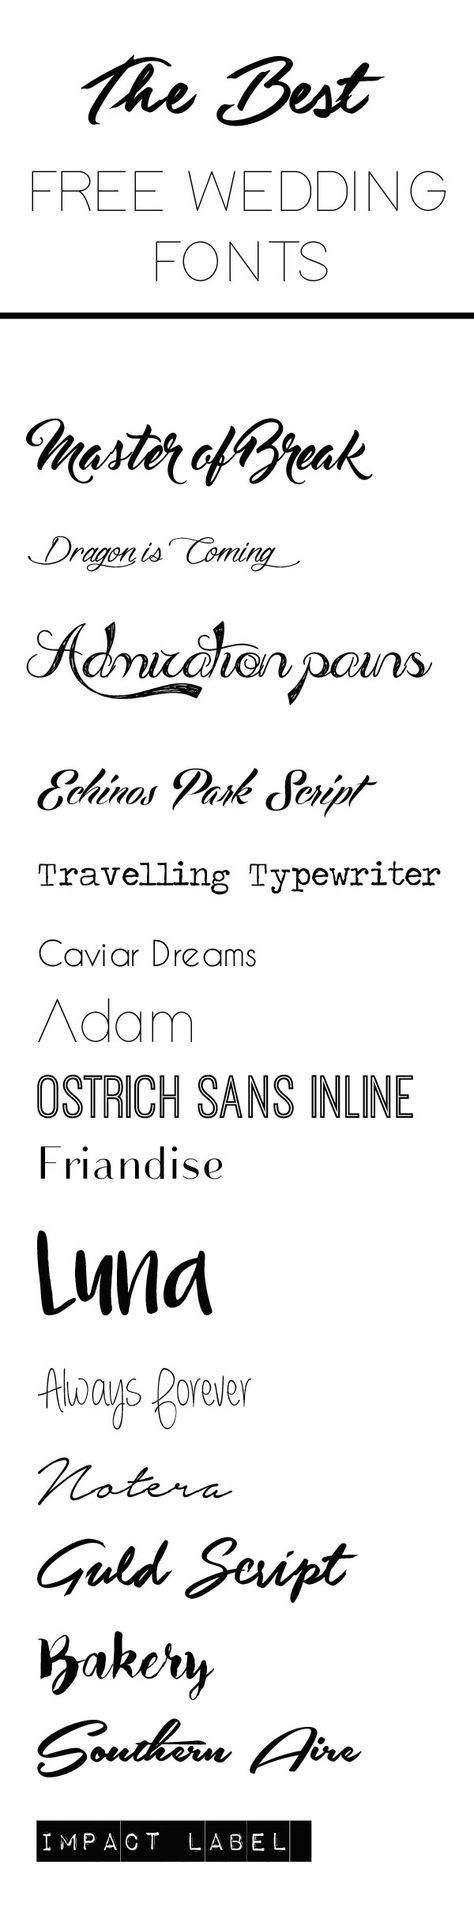 The Best Free Fonts For Wedding Invitations, Place Cards, Save The ...